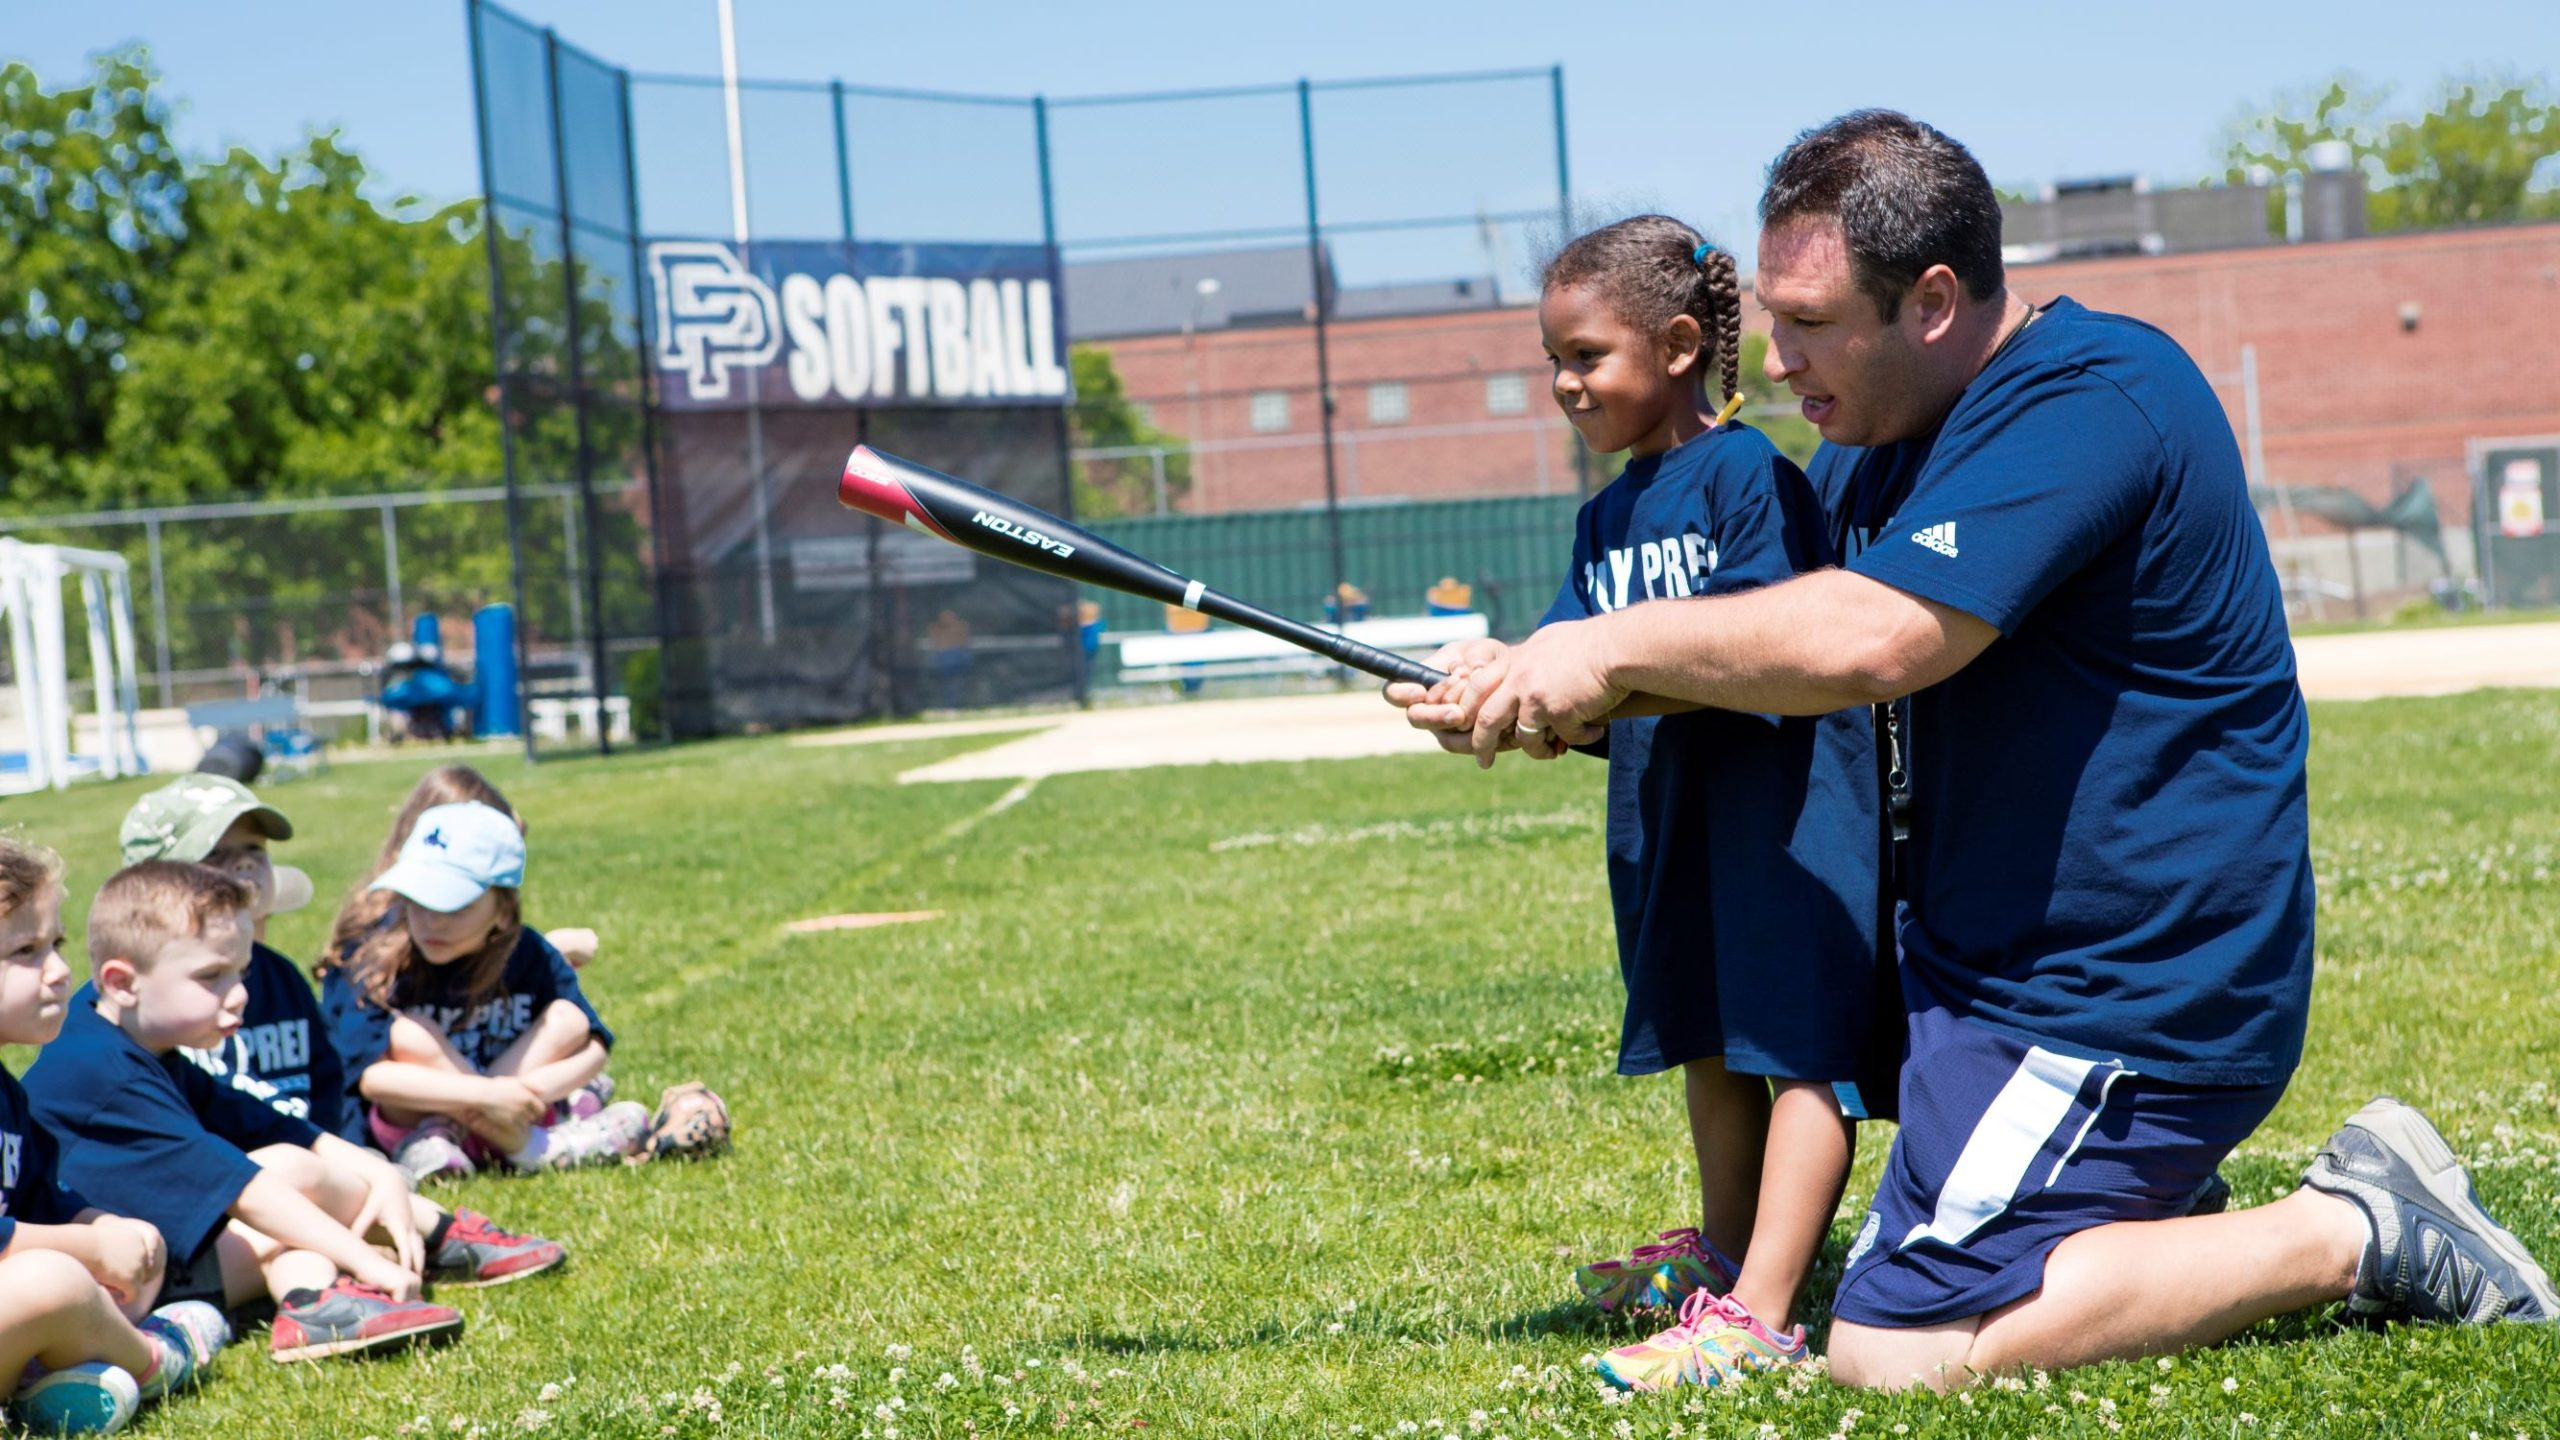 poly summer campers multi rookie sport field